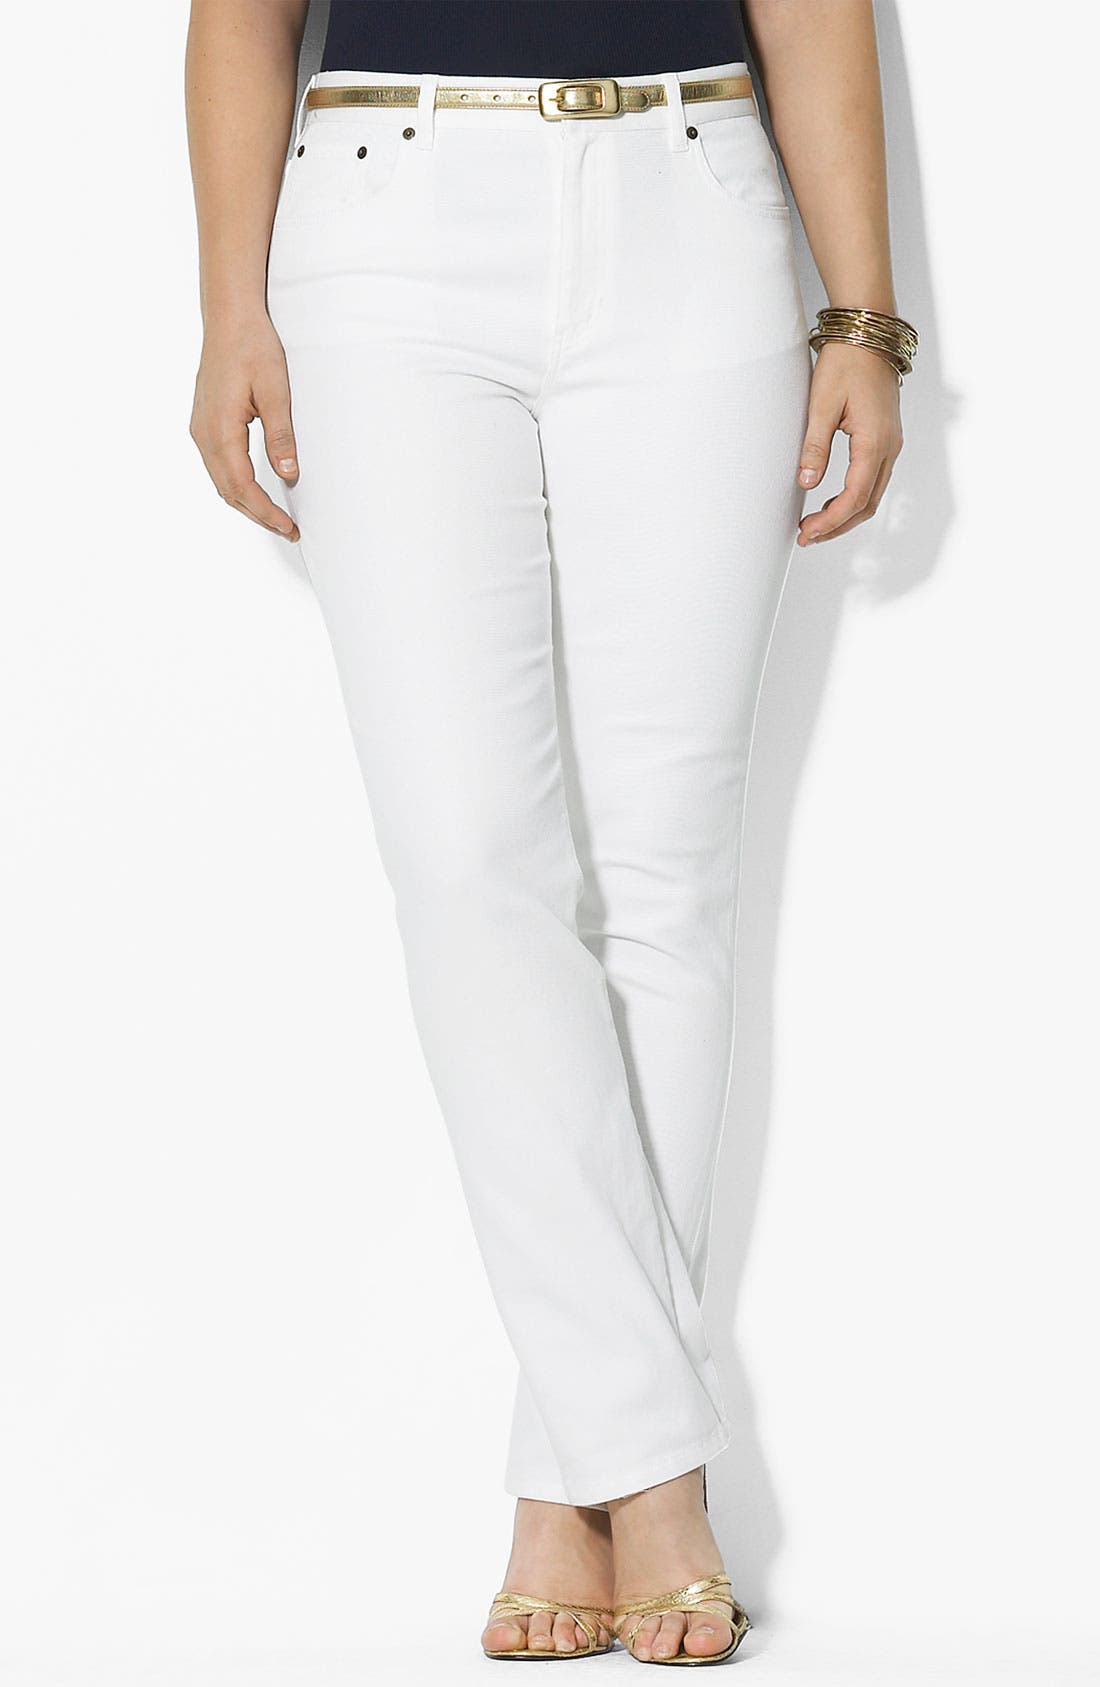 Alternate Image 1 Selected - Lauren Ralph Lauren Straight Leg Jeans (Plus)